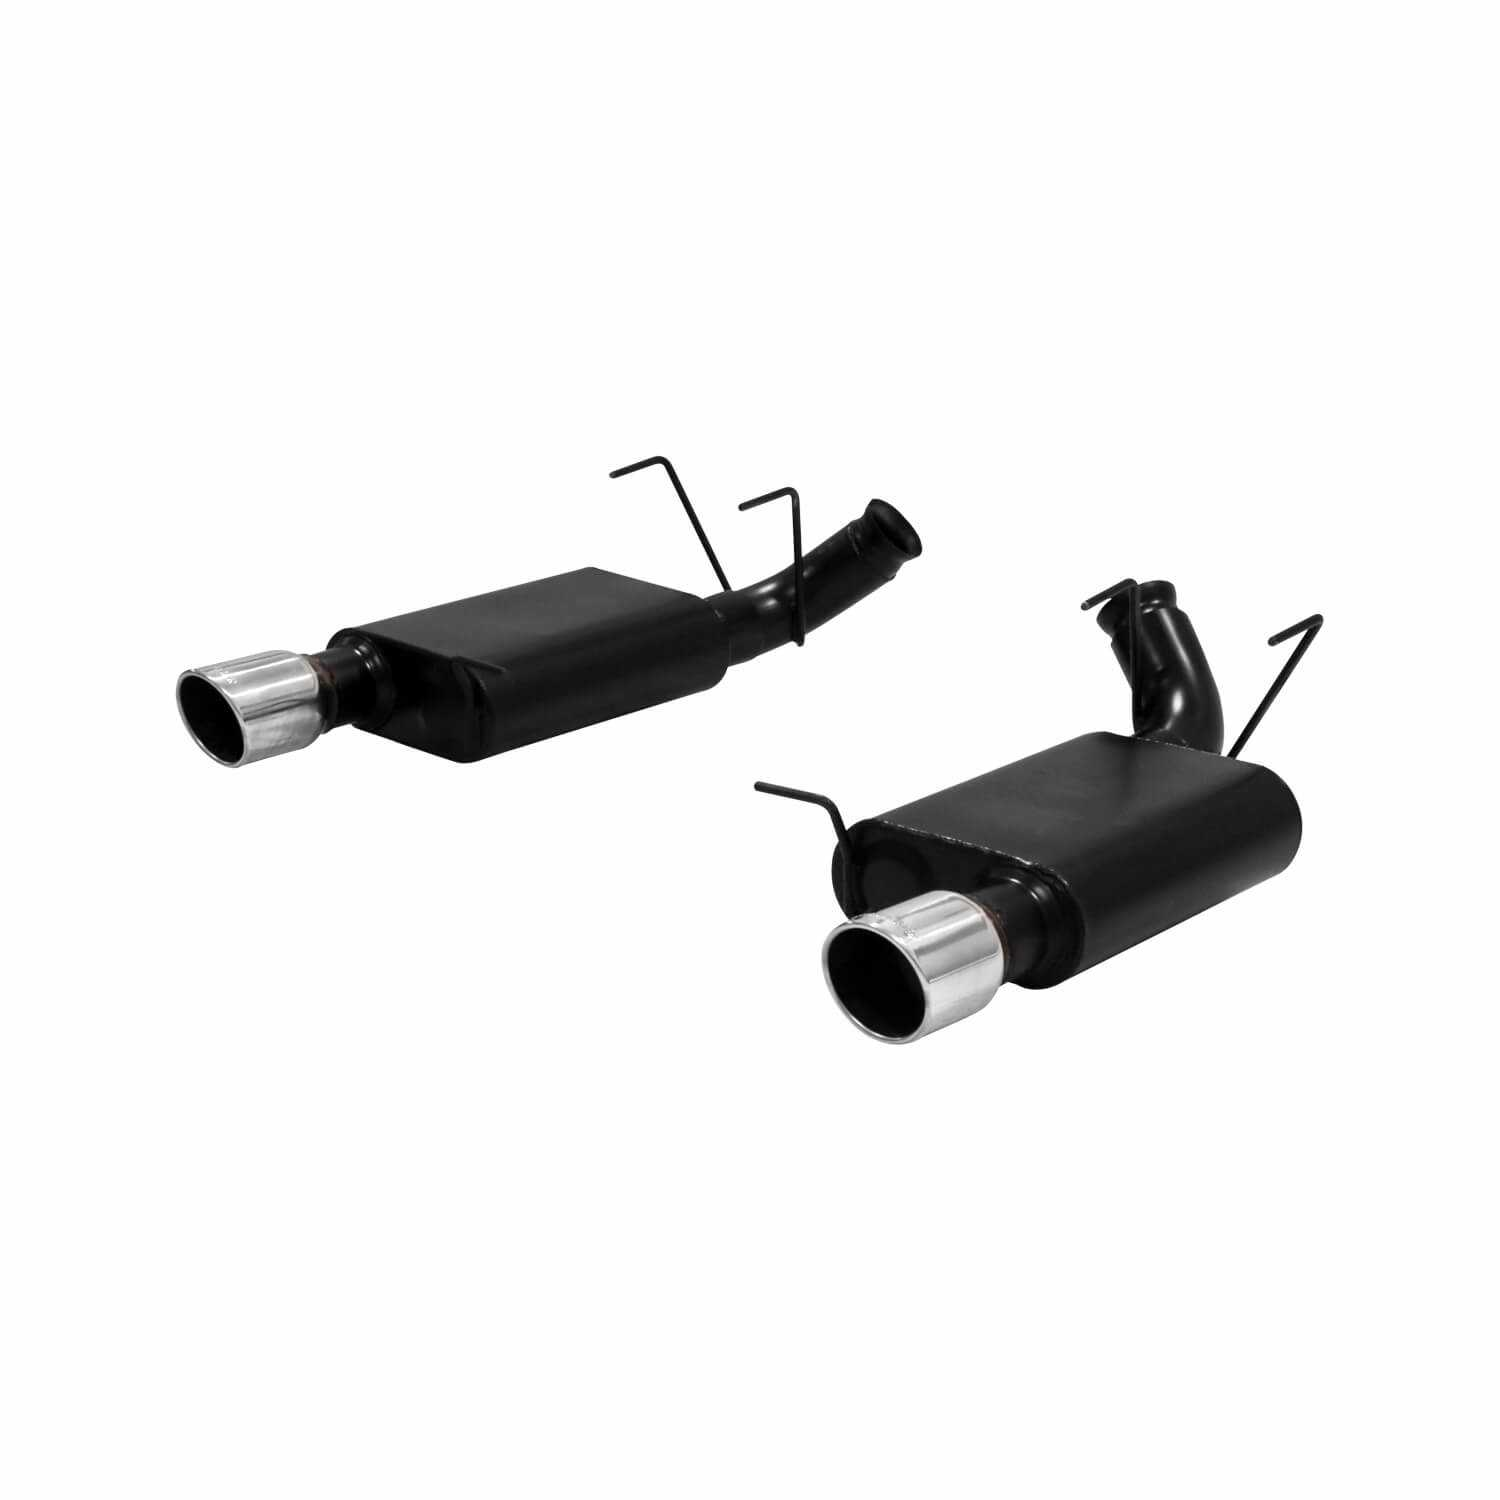 817496 Flowmaster American Thunder Axle Back Exhaust System